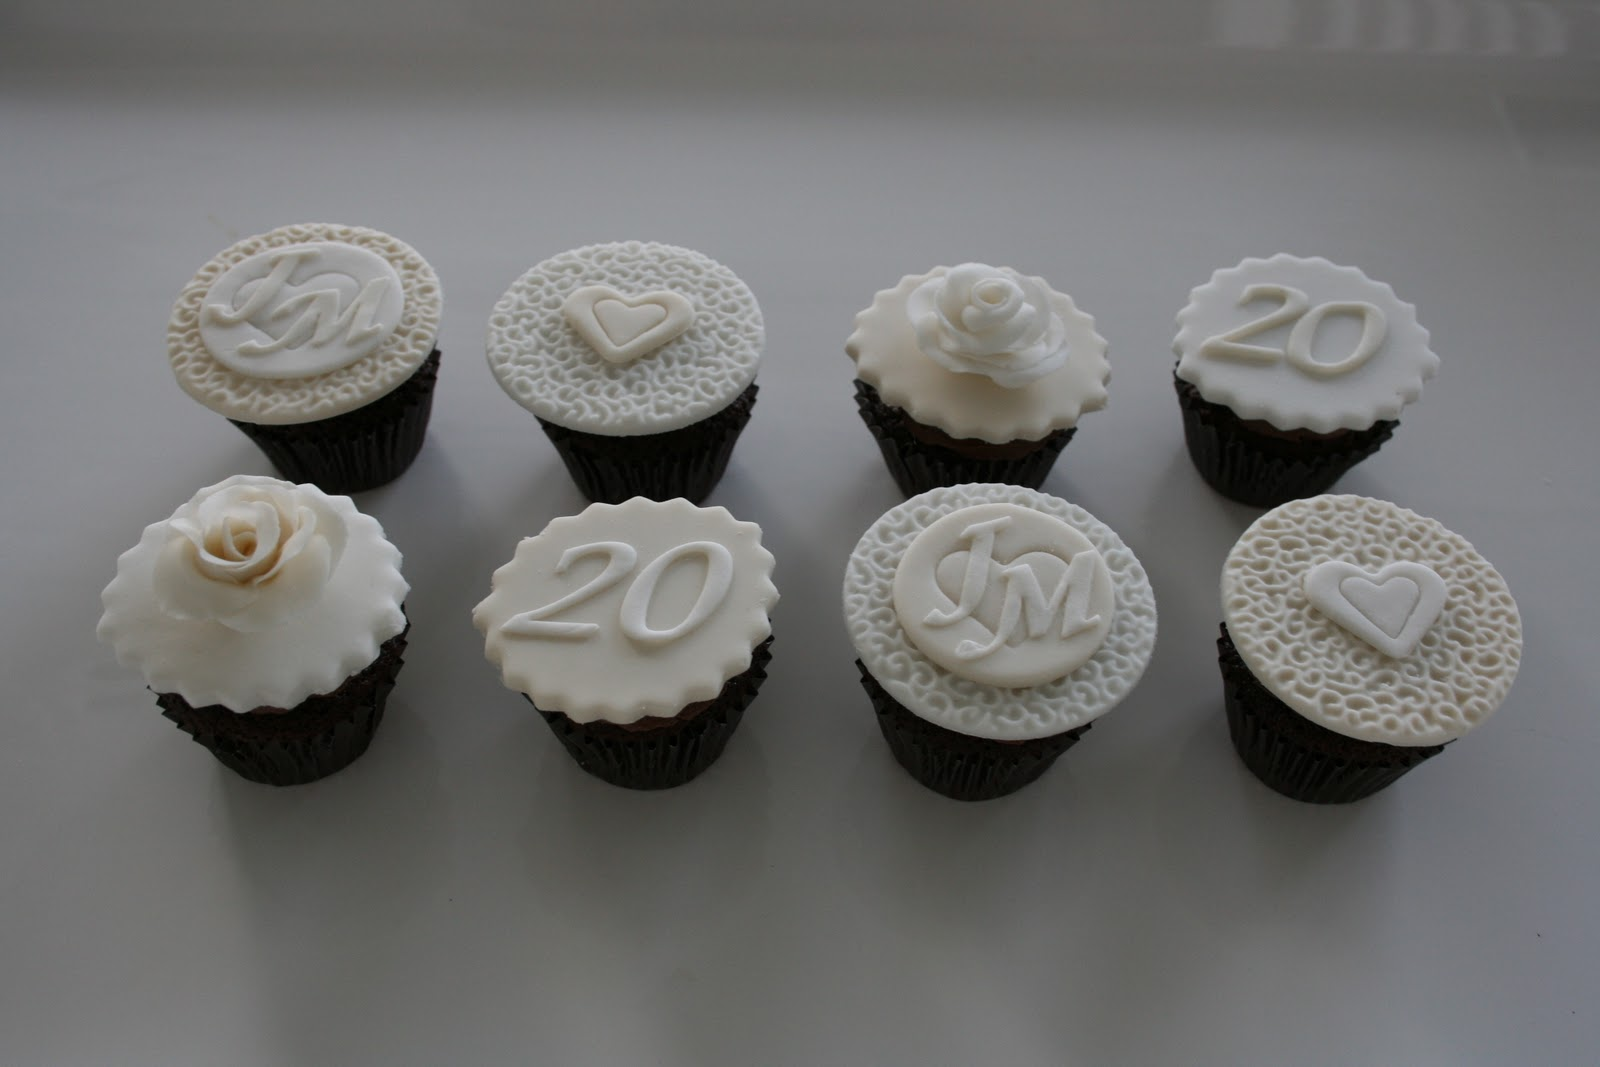 Baked by design th wedding anniversary cupcakes